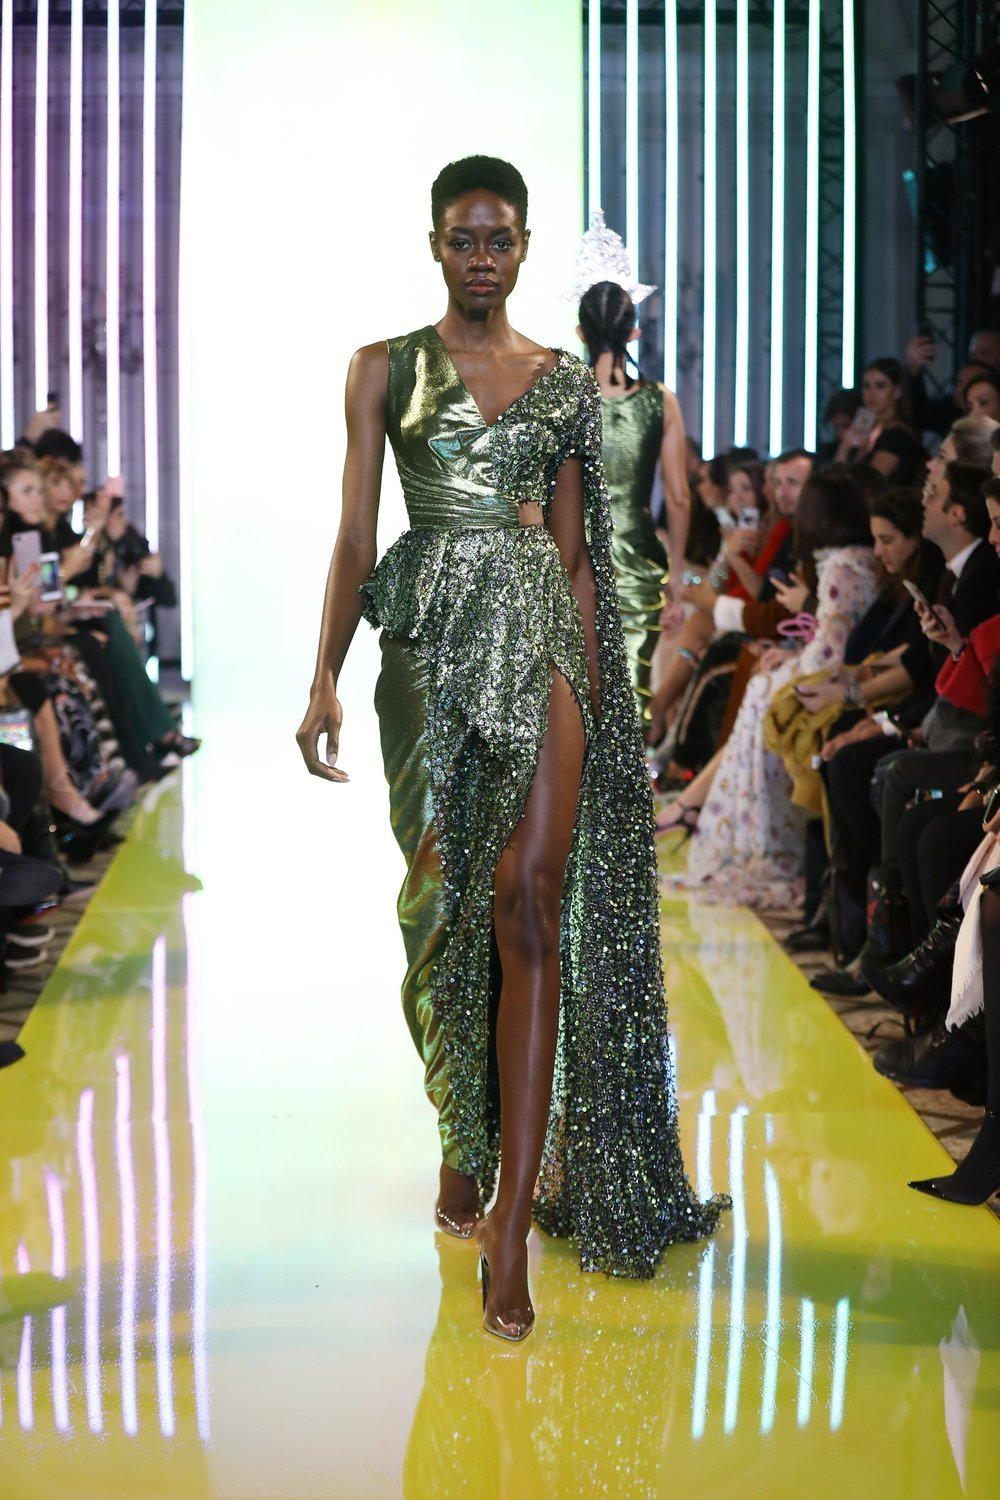 SS19-30- Olive Green Asymmetric Dress Featuring Threads And Sequins Embellishements And A Side Slit .jpg